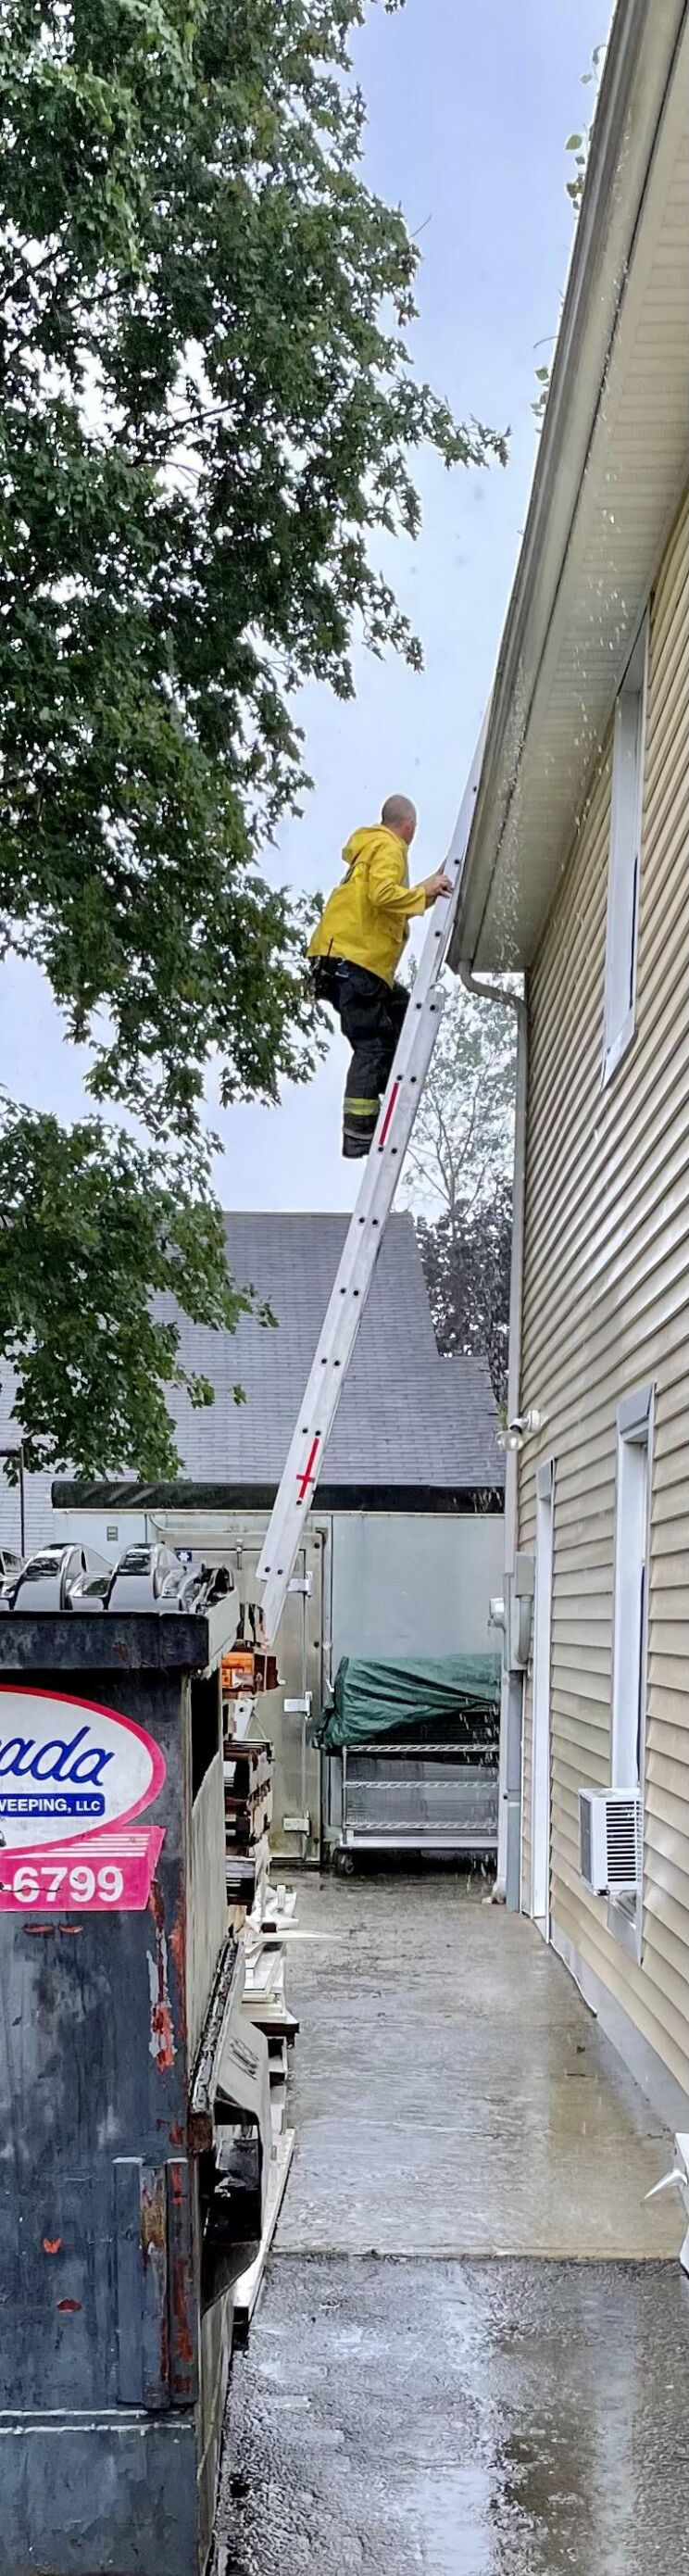 Officials say Litchfield County fared well during Henri; with storms must take 'each one seriously'